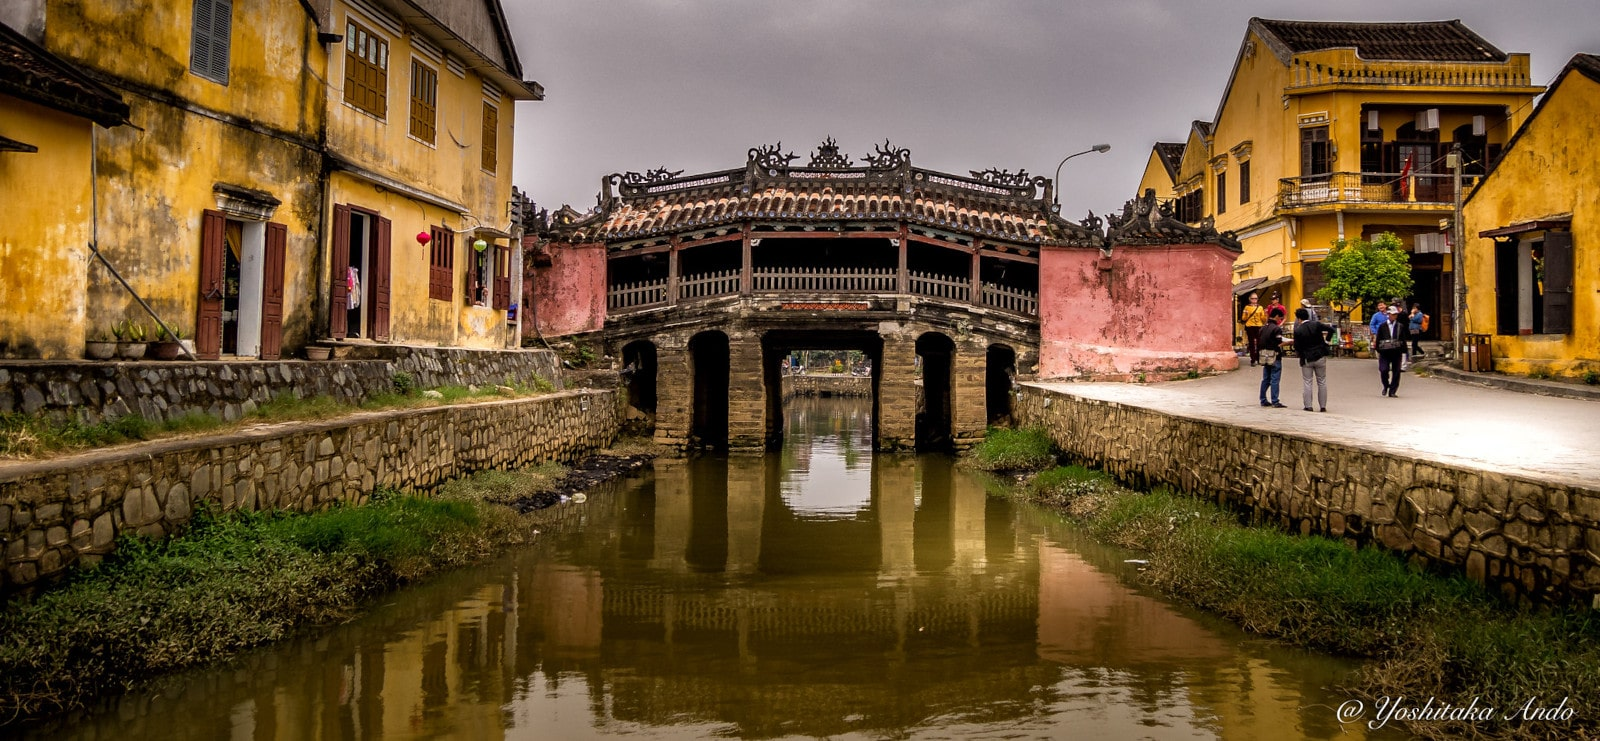 Image of the Japanese Covered Bridge in Old Town Hoi An, Vietnam